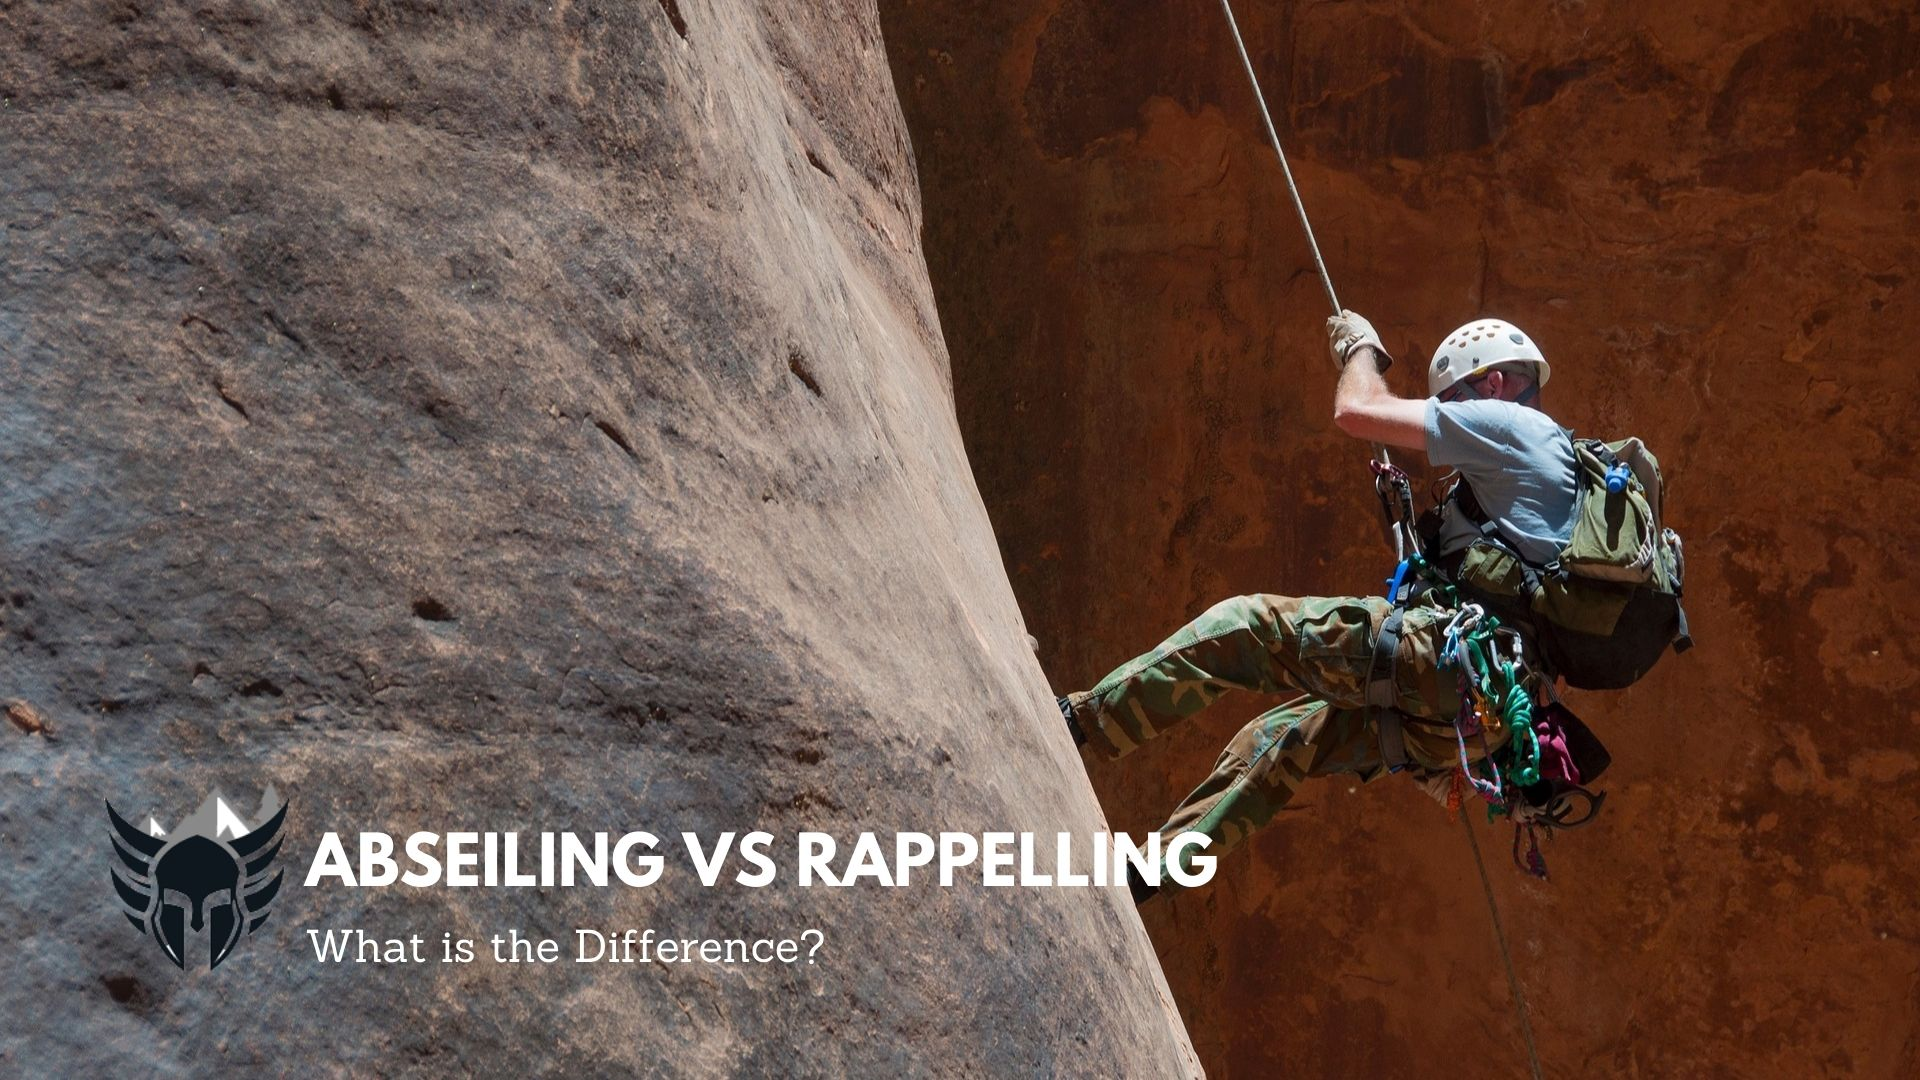 Abseiling Vs Rappelling